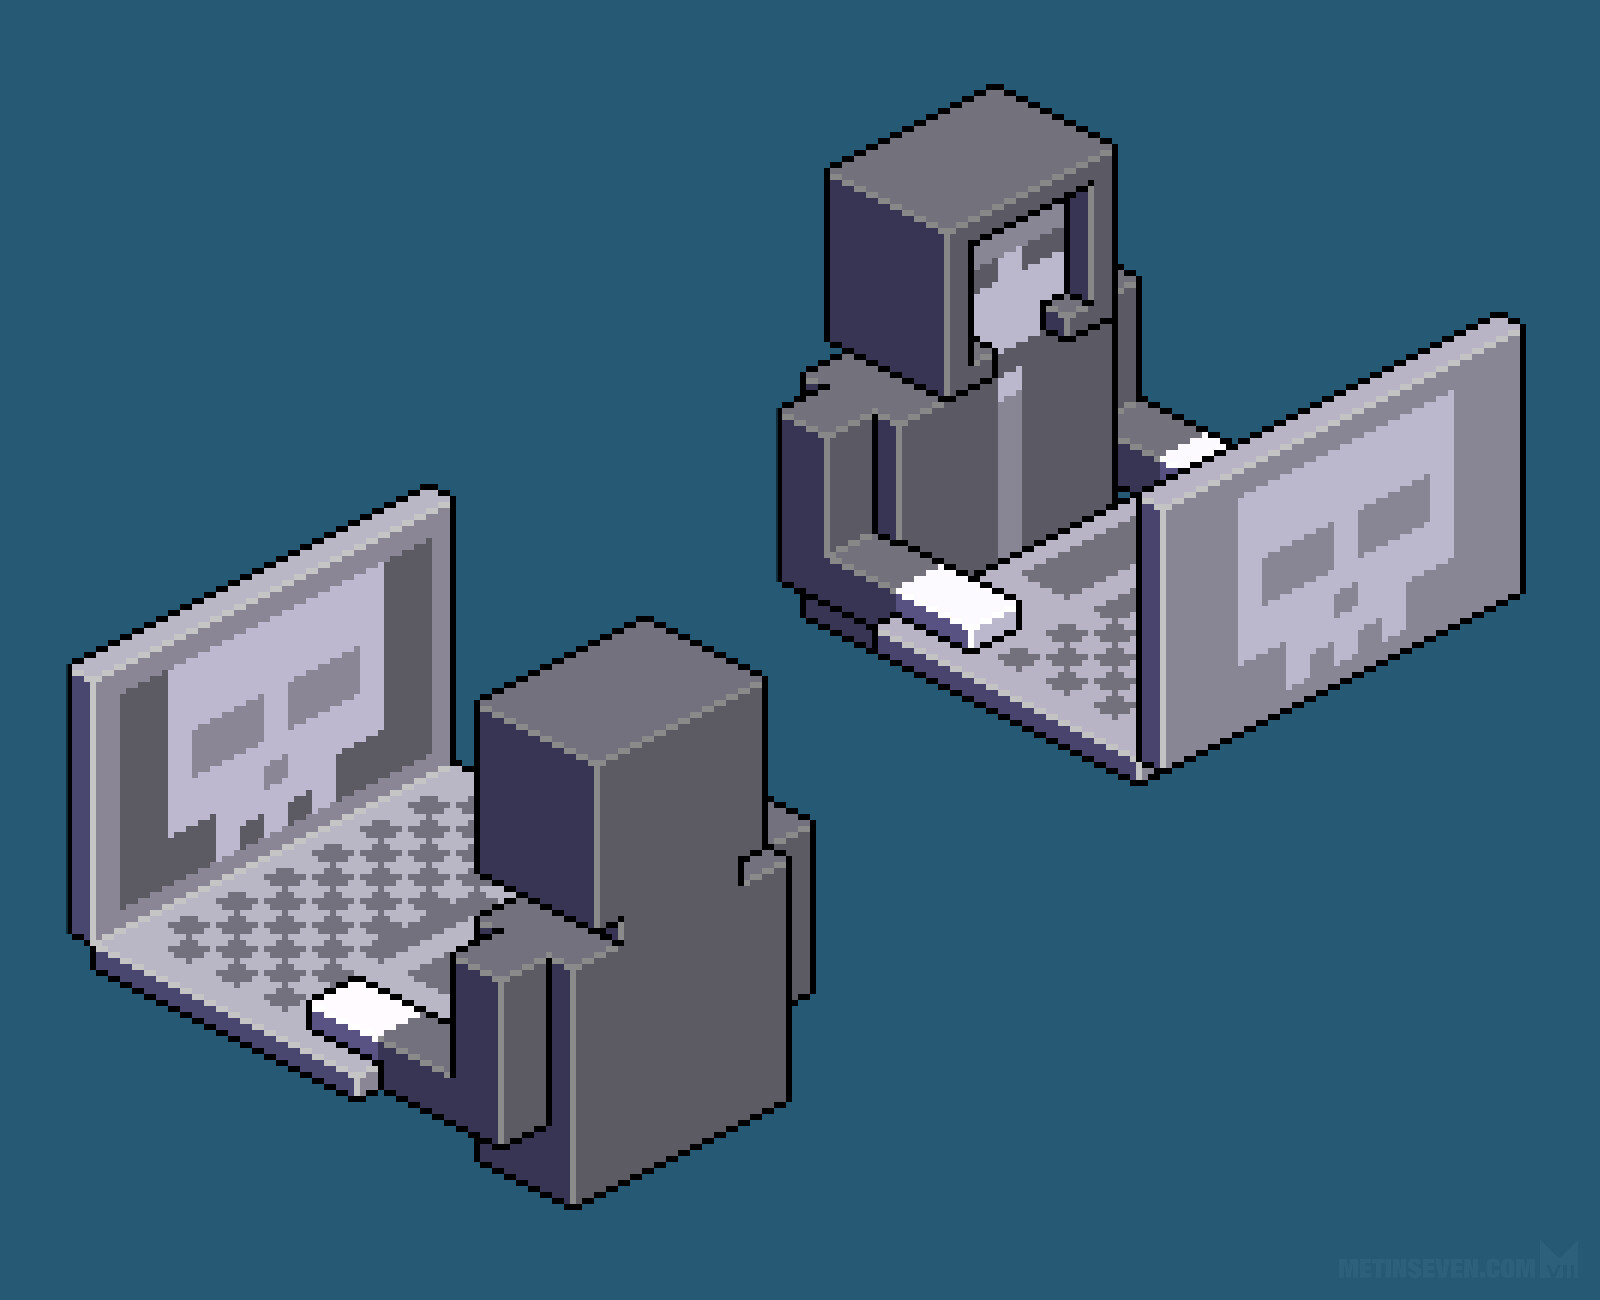 Isometric pixel character design of a Black Hat hacker, for an EclecticIQ sticker series